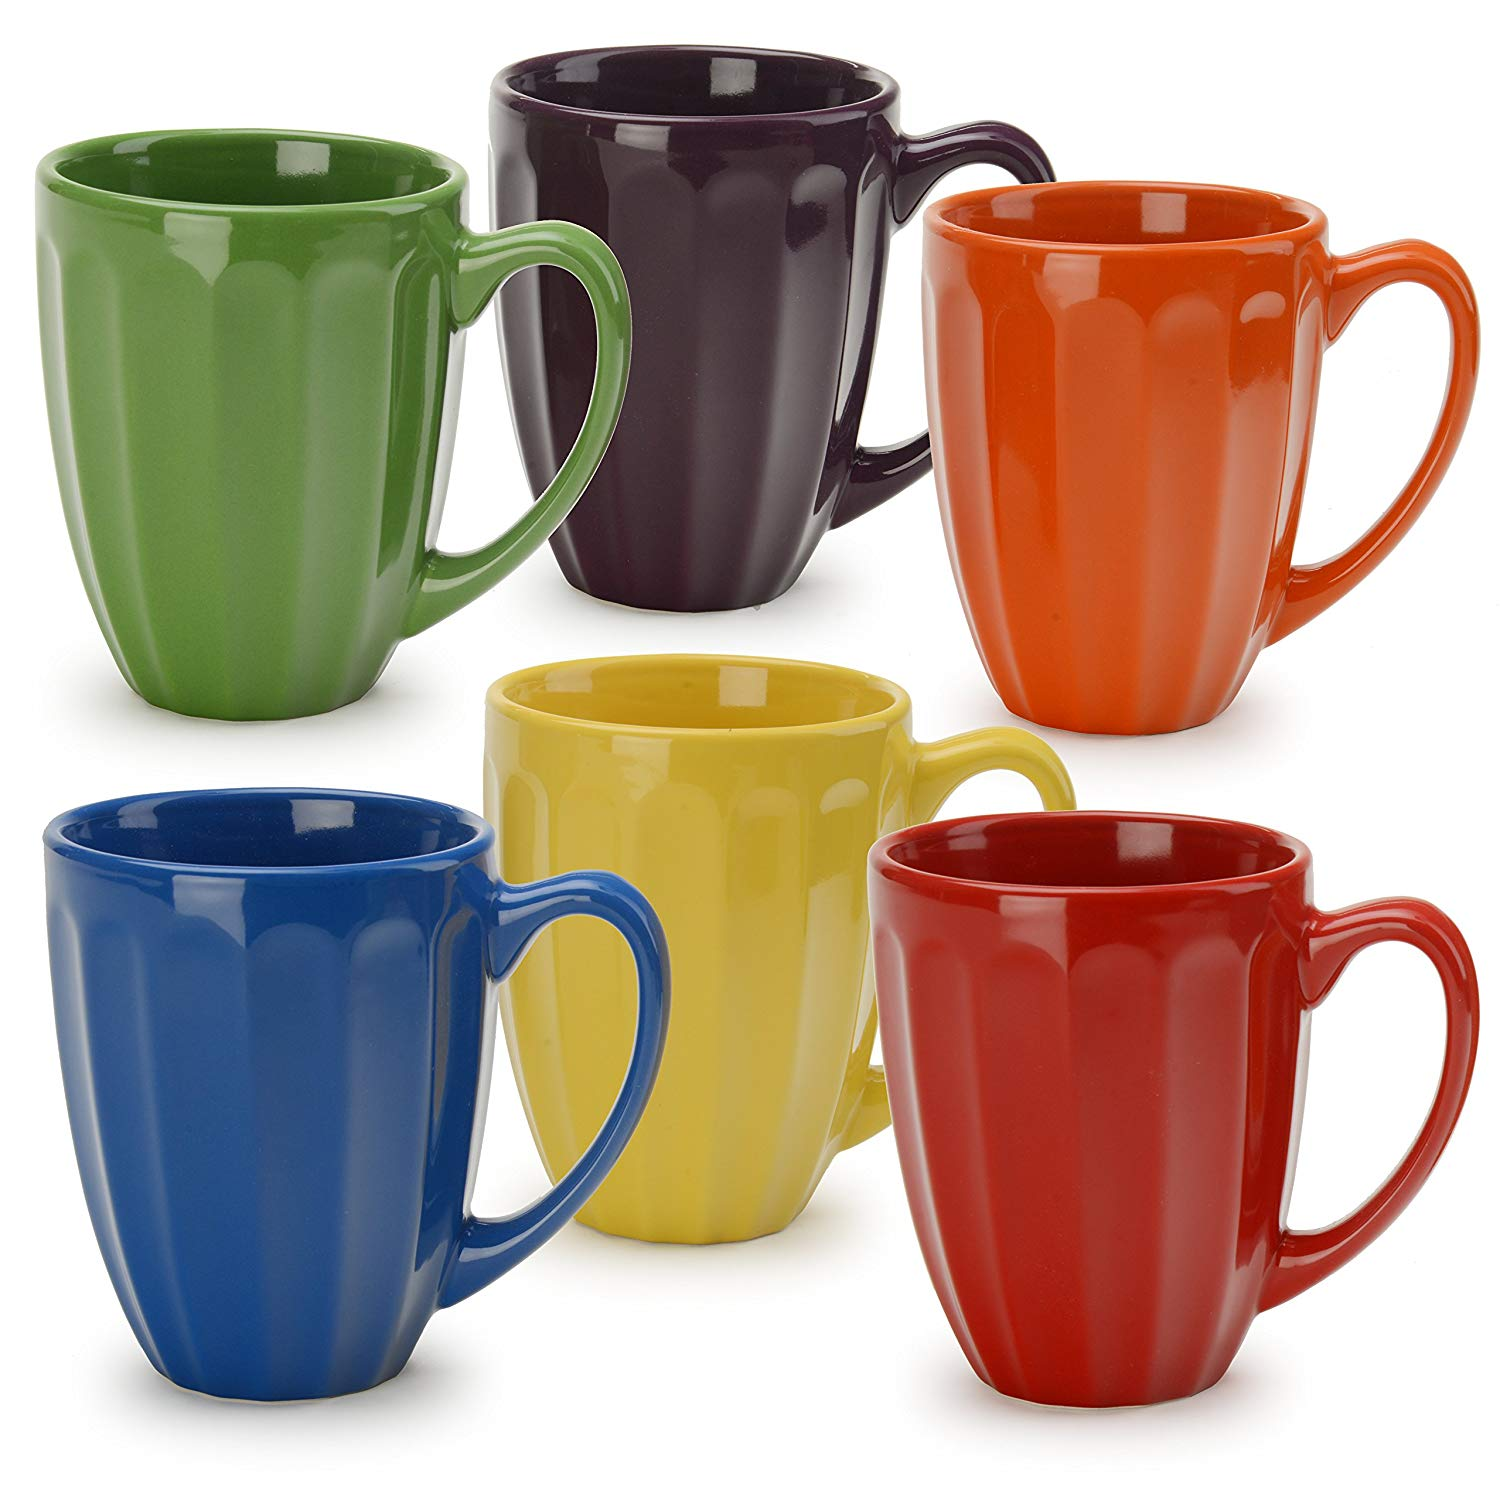 Top 10 Best Coffee Mug Sets Reviews Buying Guide 17